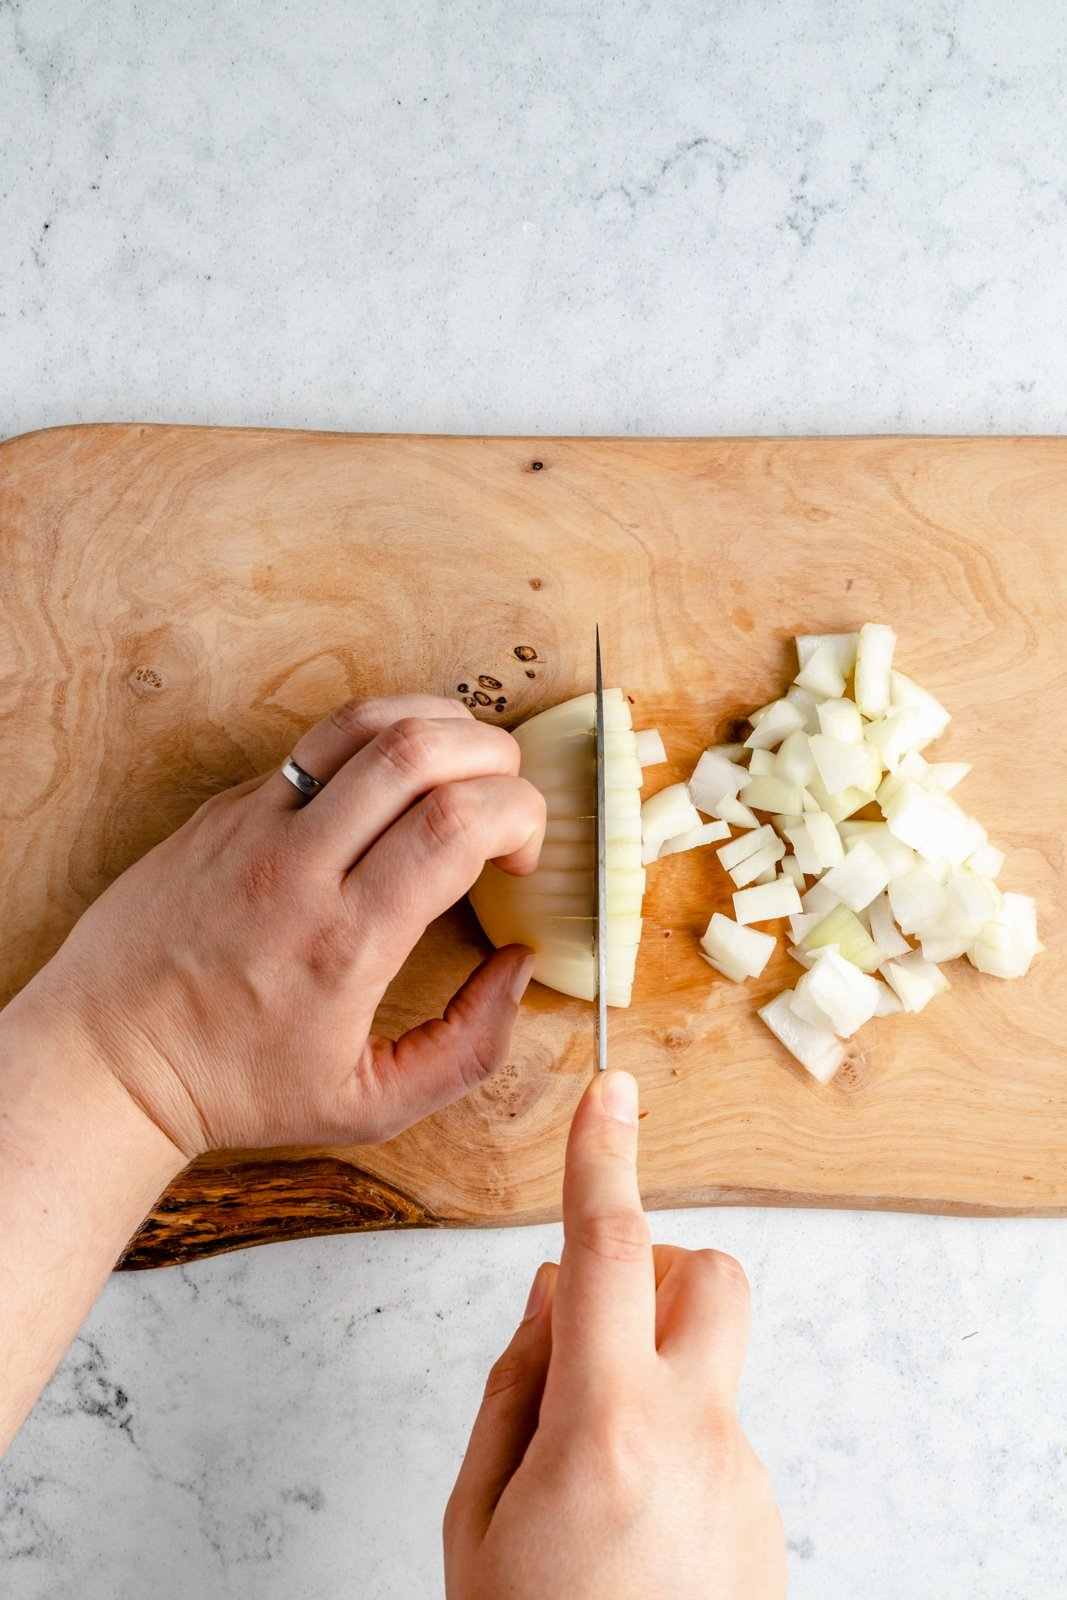 dicing an onion on a cutting board